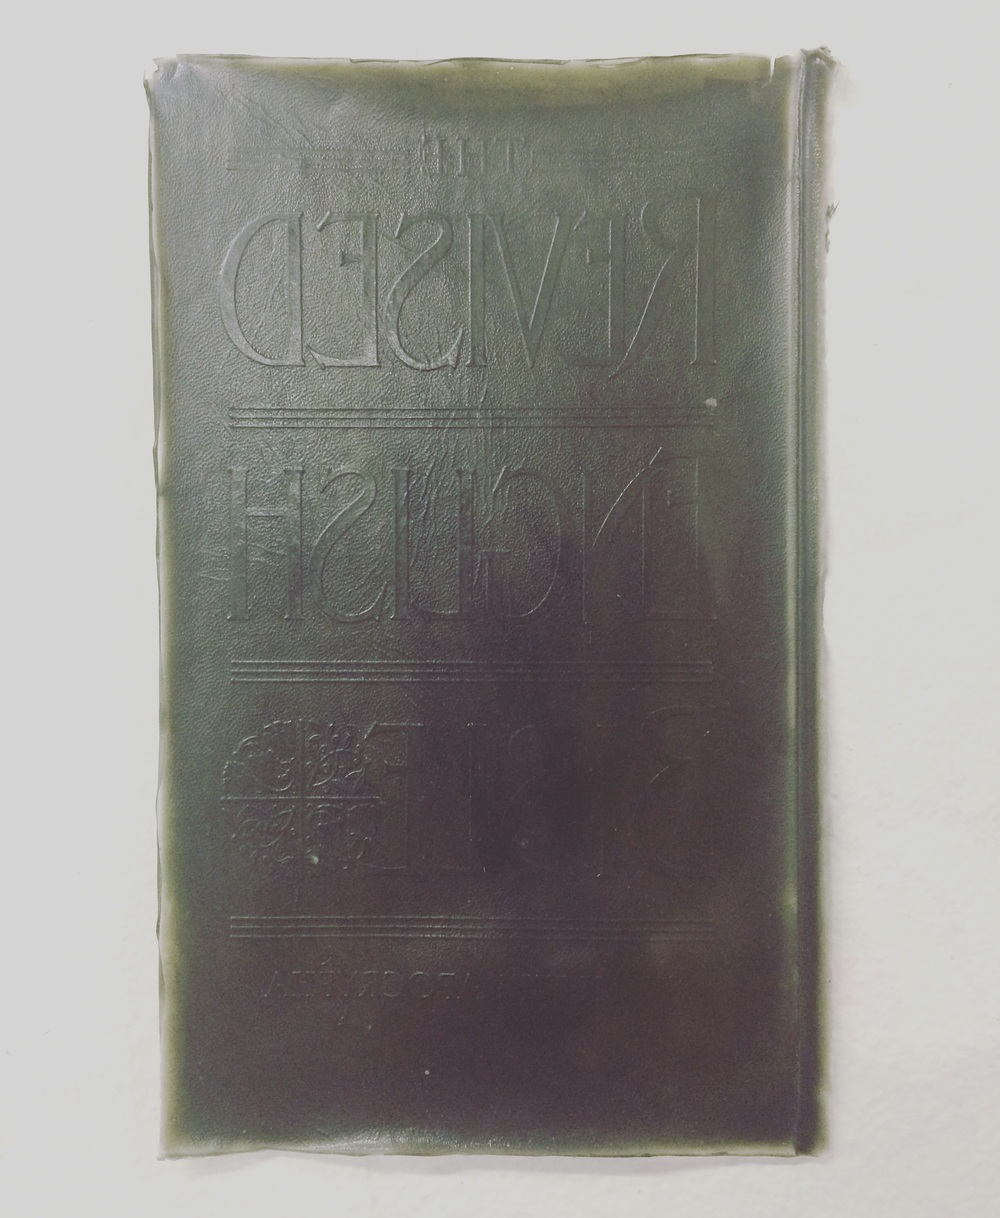 Graphite cast (inverted) of The Rvised English Bible